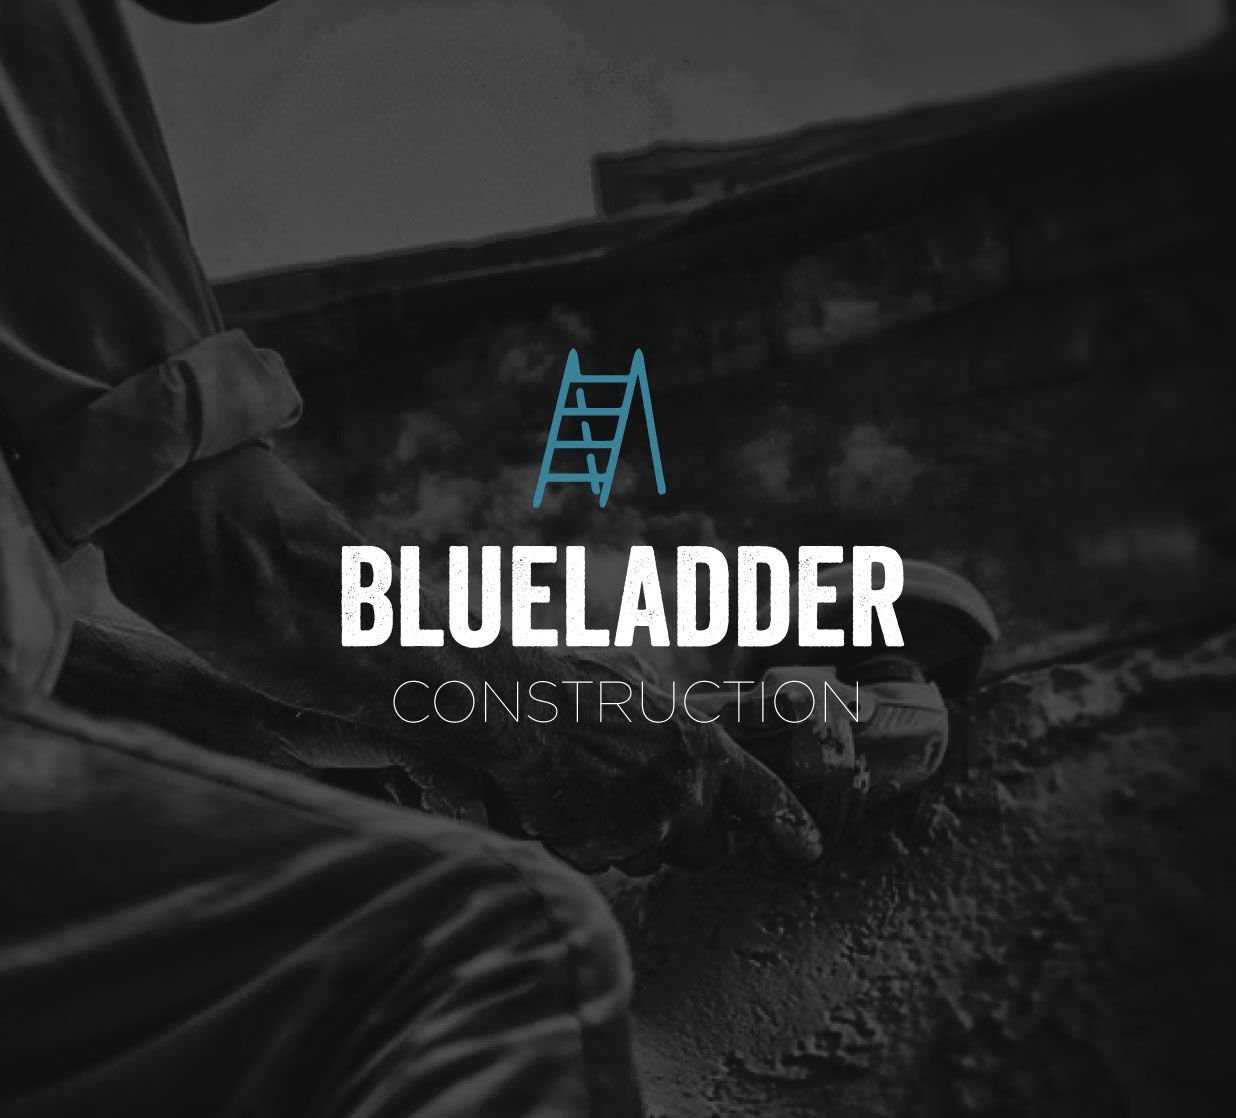 Construction Company Name Ideas | Construction